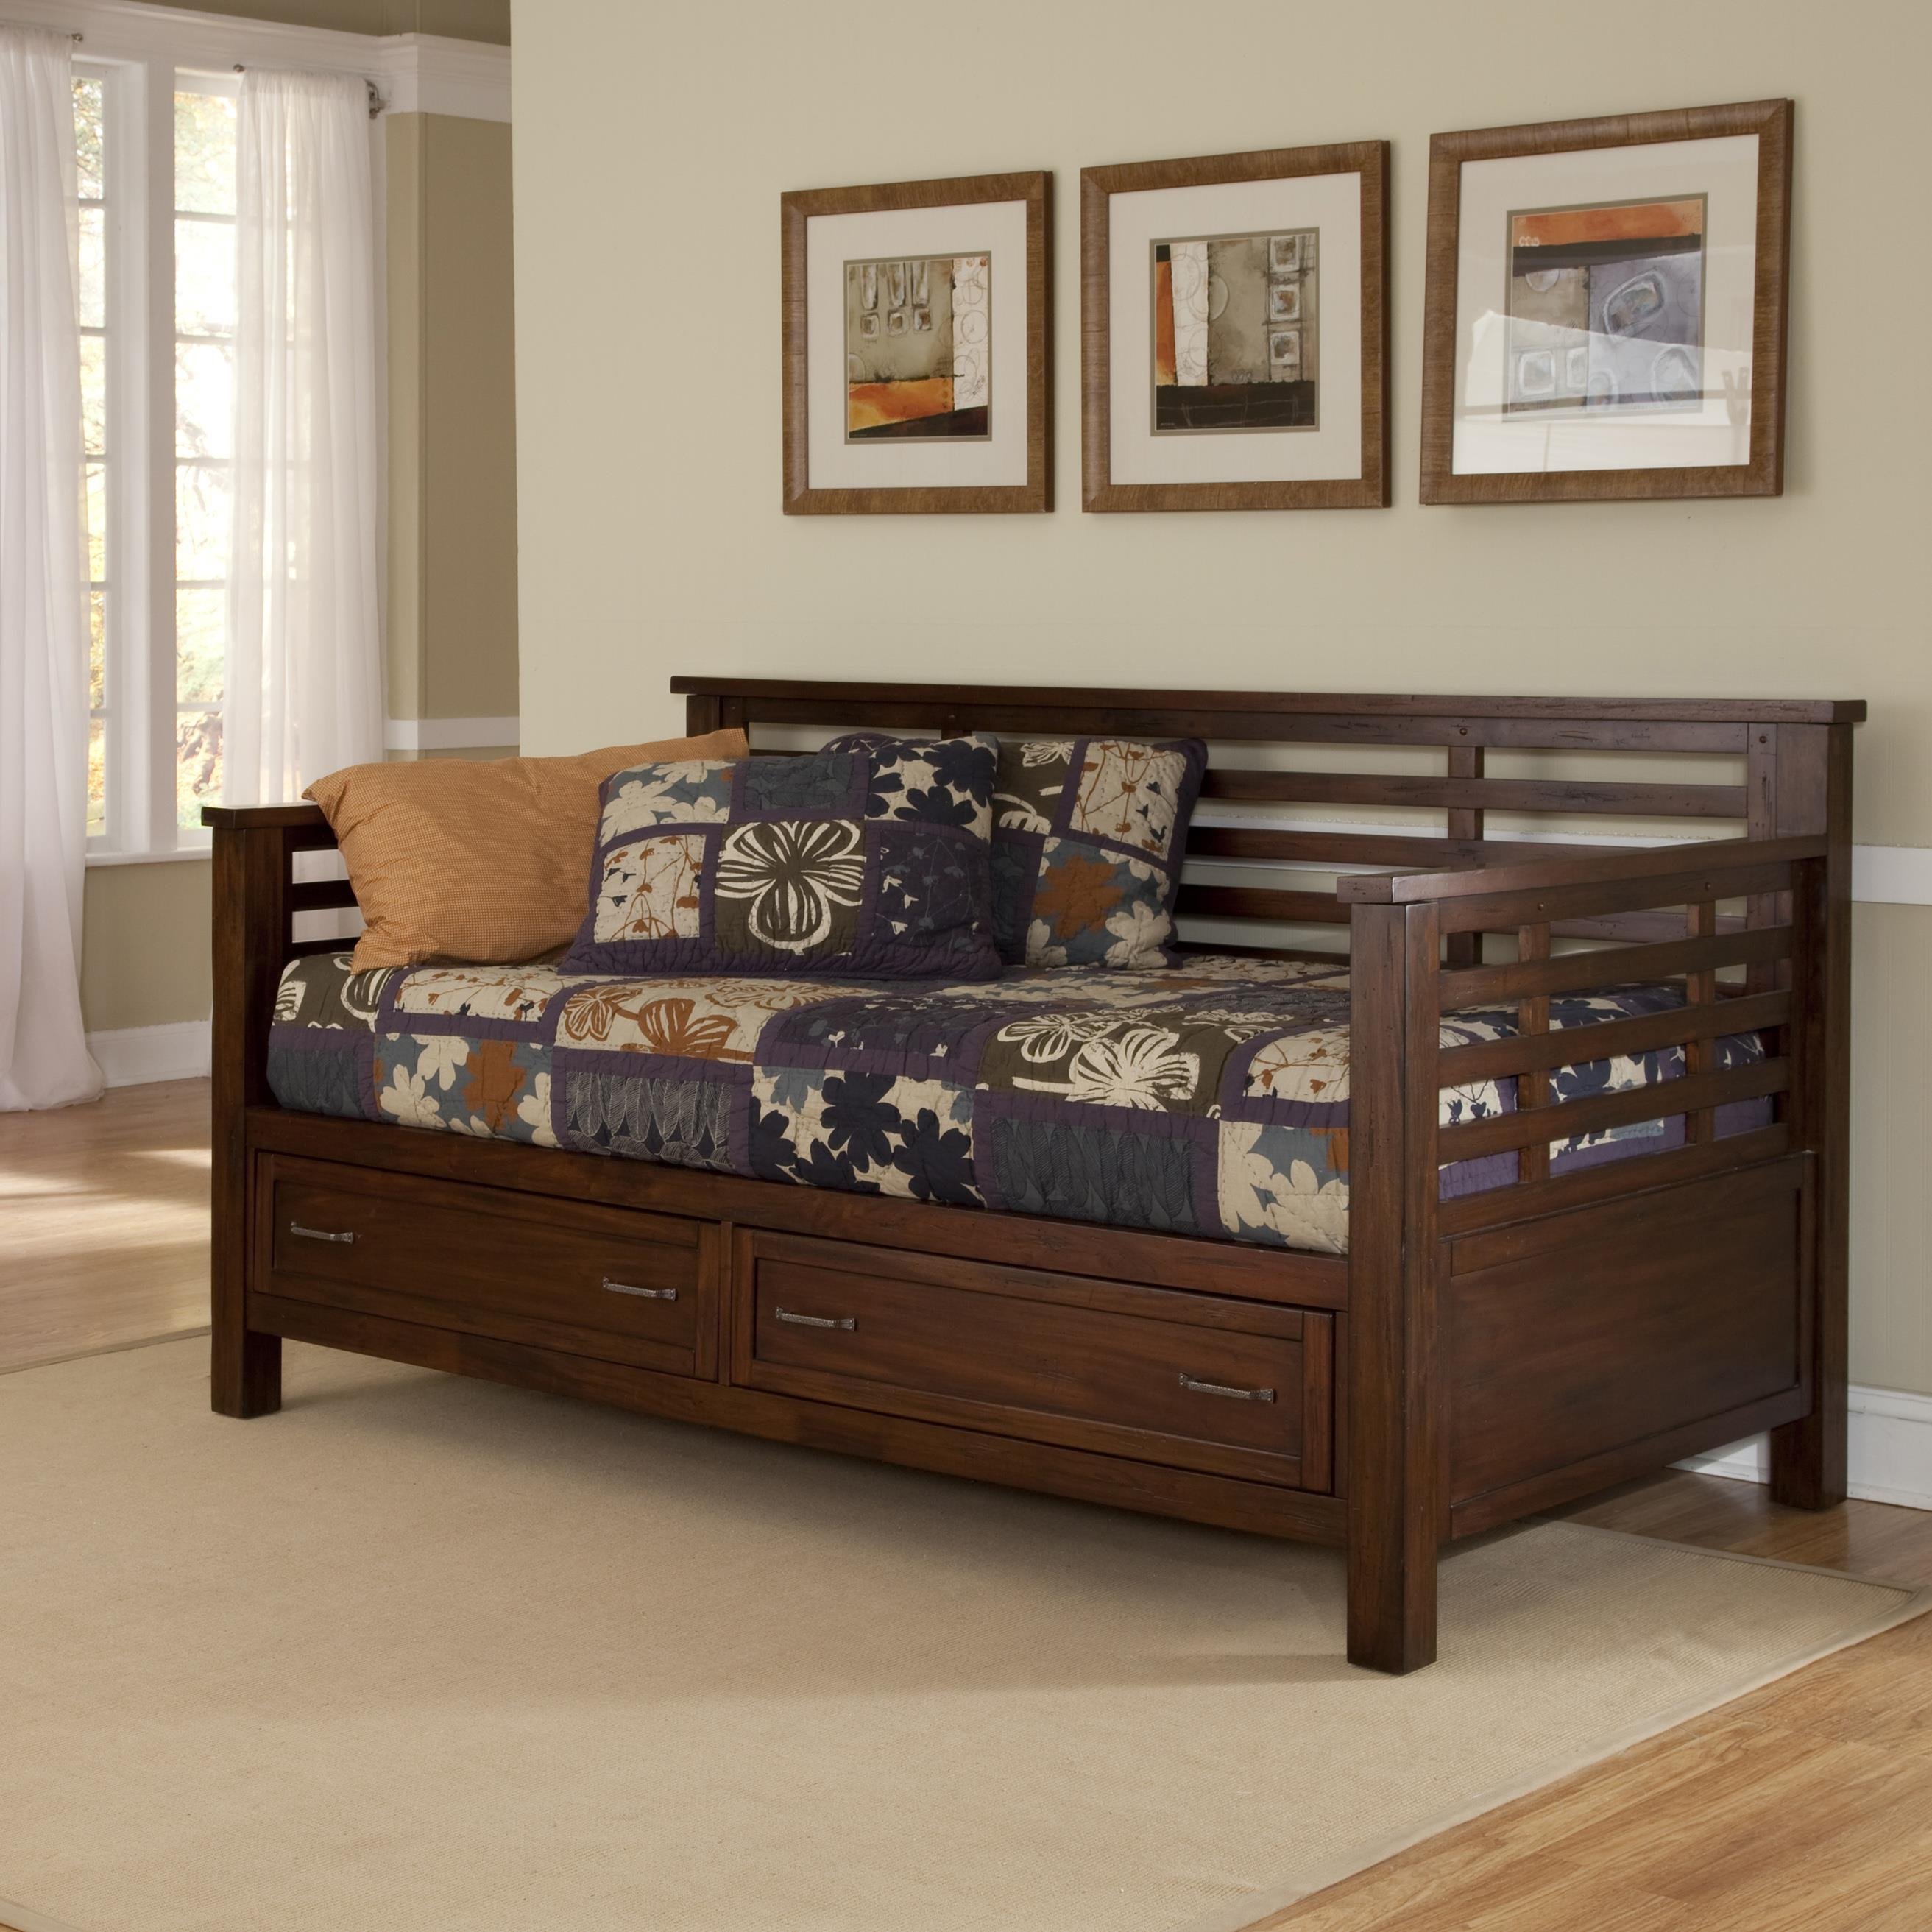 Exquisite daybed with storage for small bedroom design with full size daybed with storage